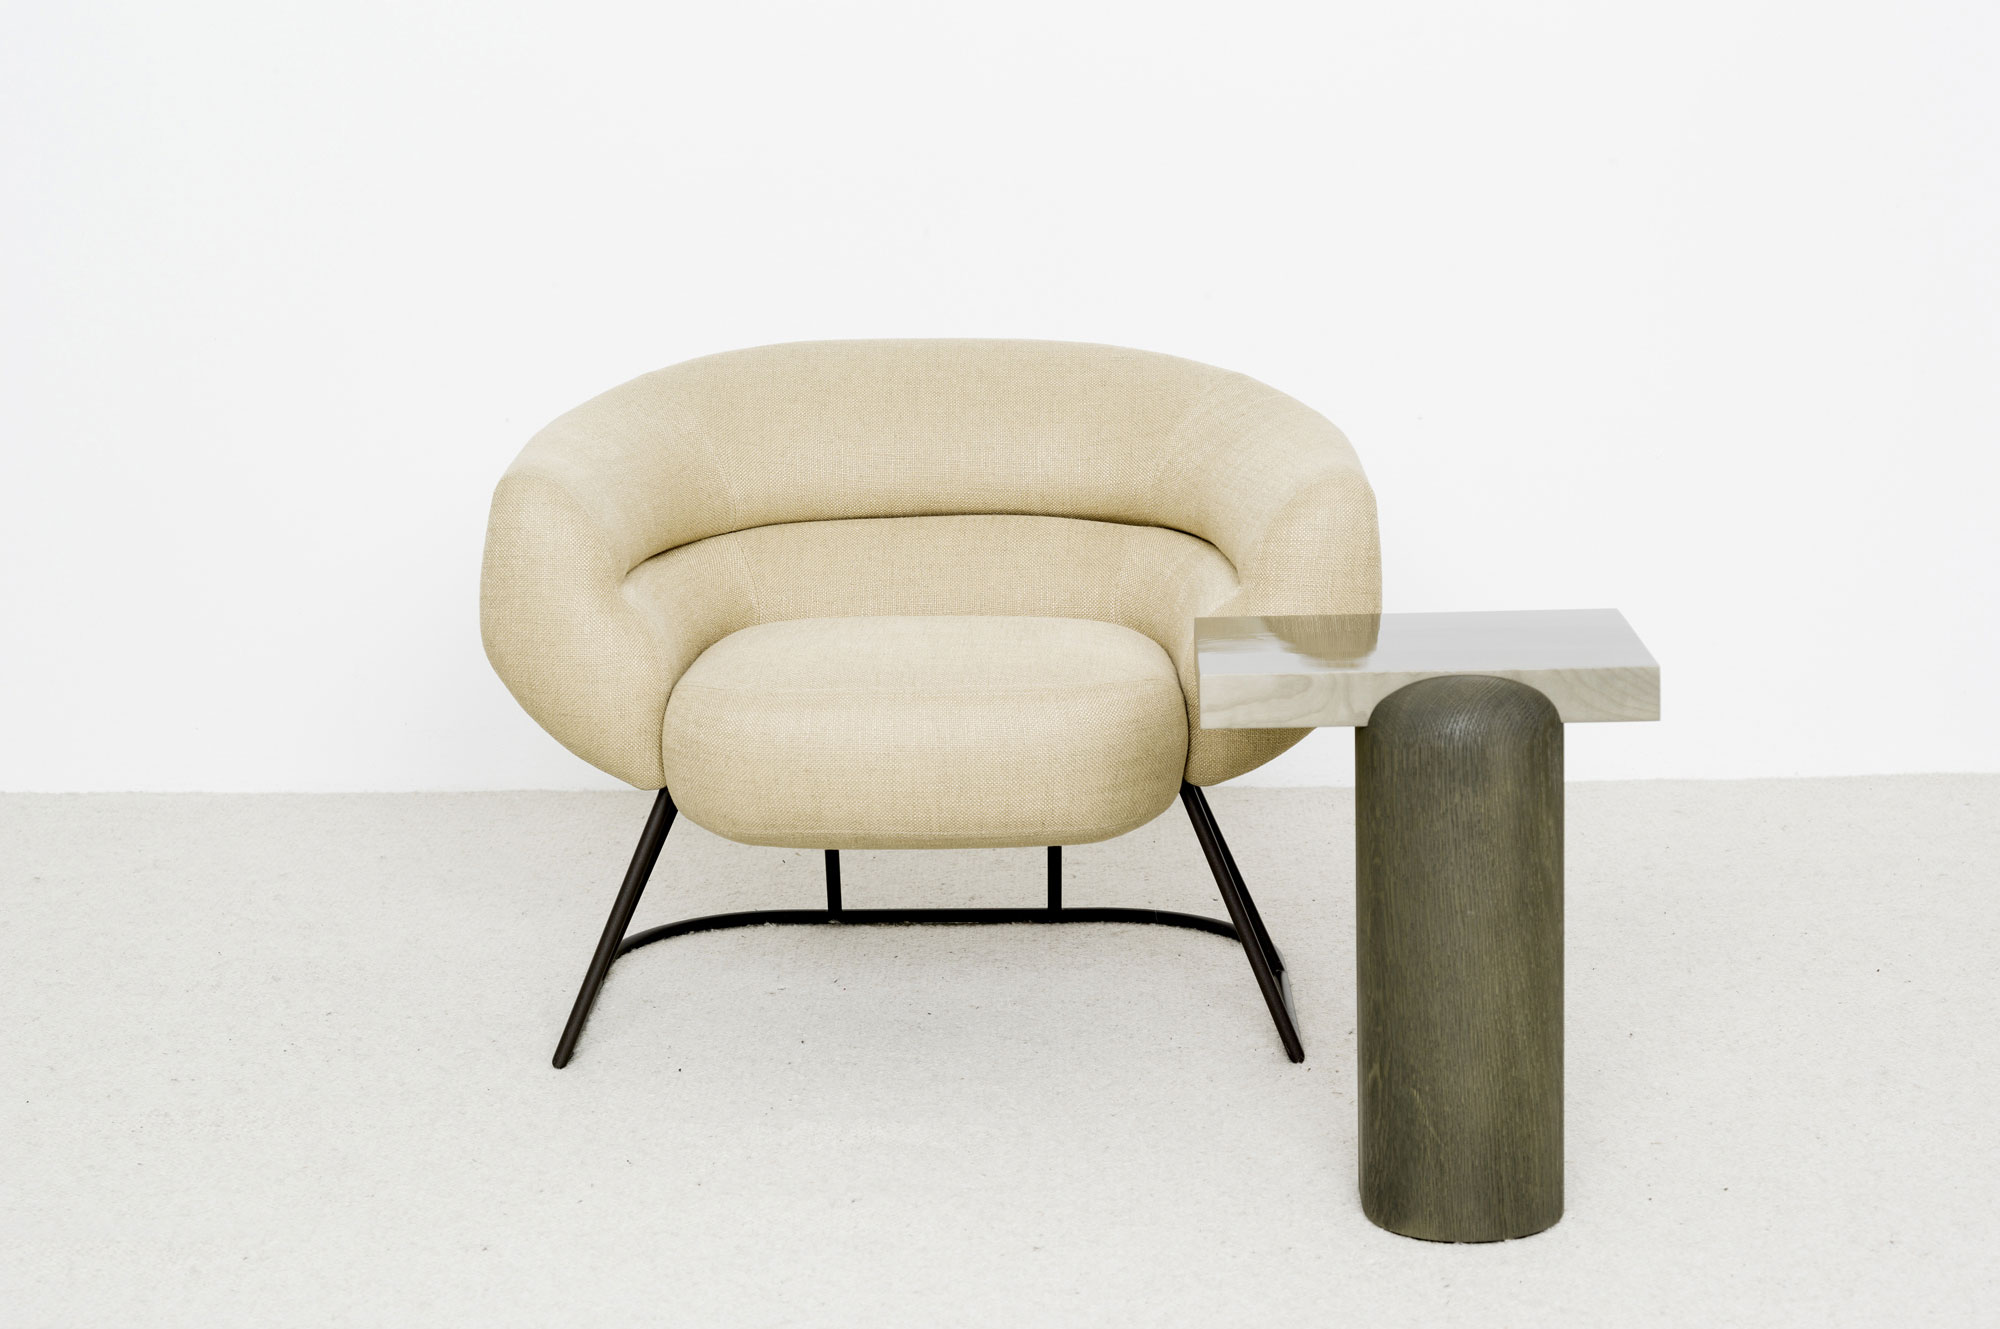 bob sofa christophe delcourt canape gonflable convertible 2 places intex fauteuil dje table appoint leo